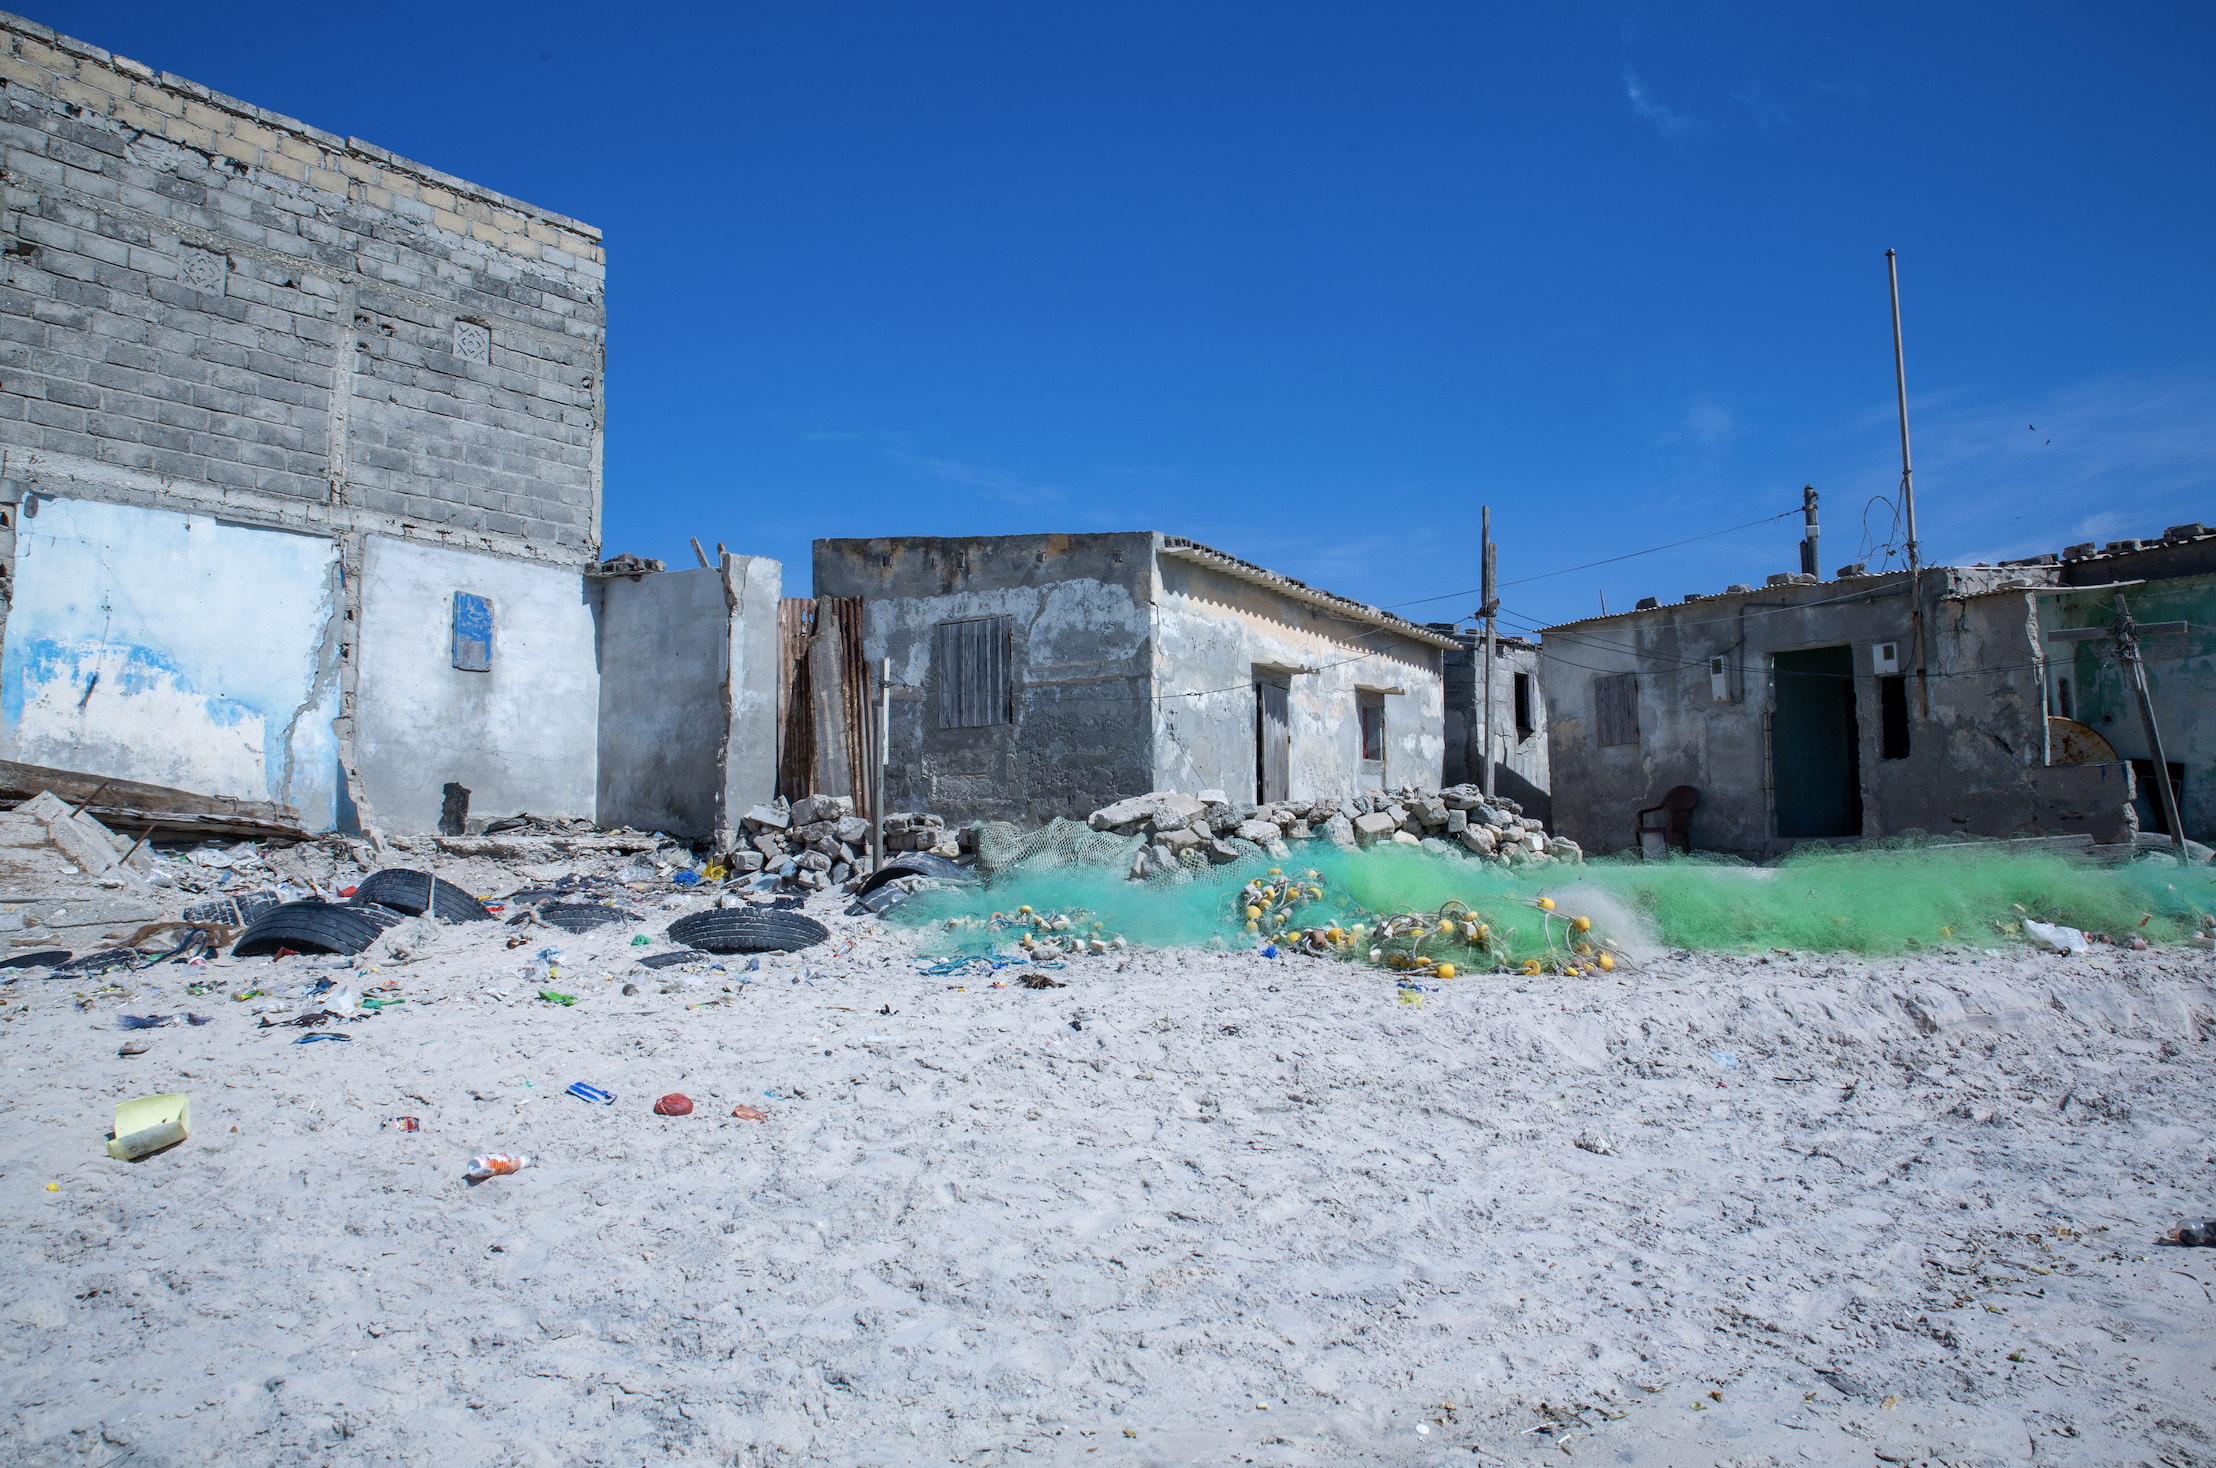 Fishing nets piled on the sand sit next to homes in Bargny.